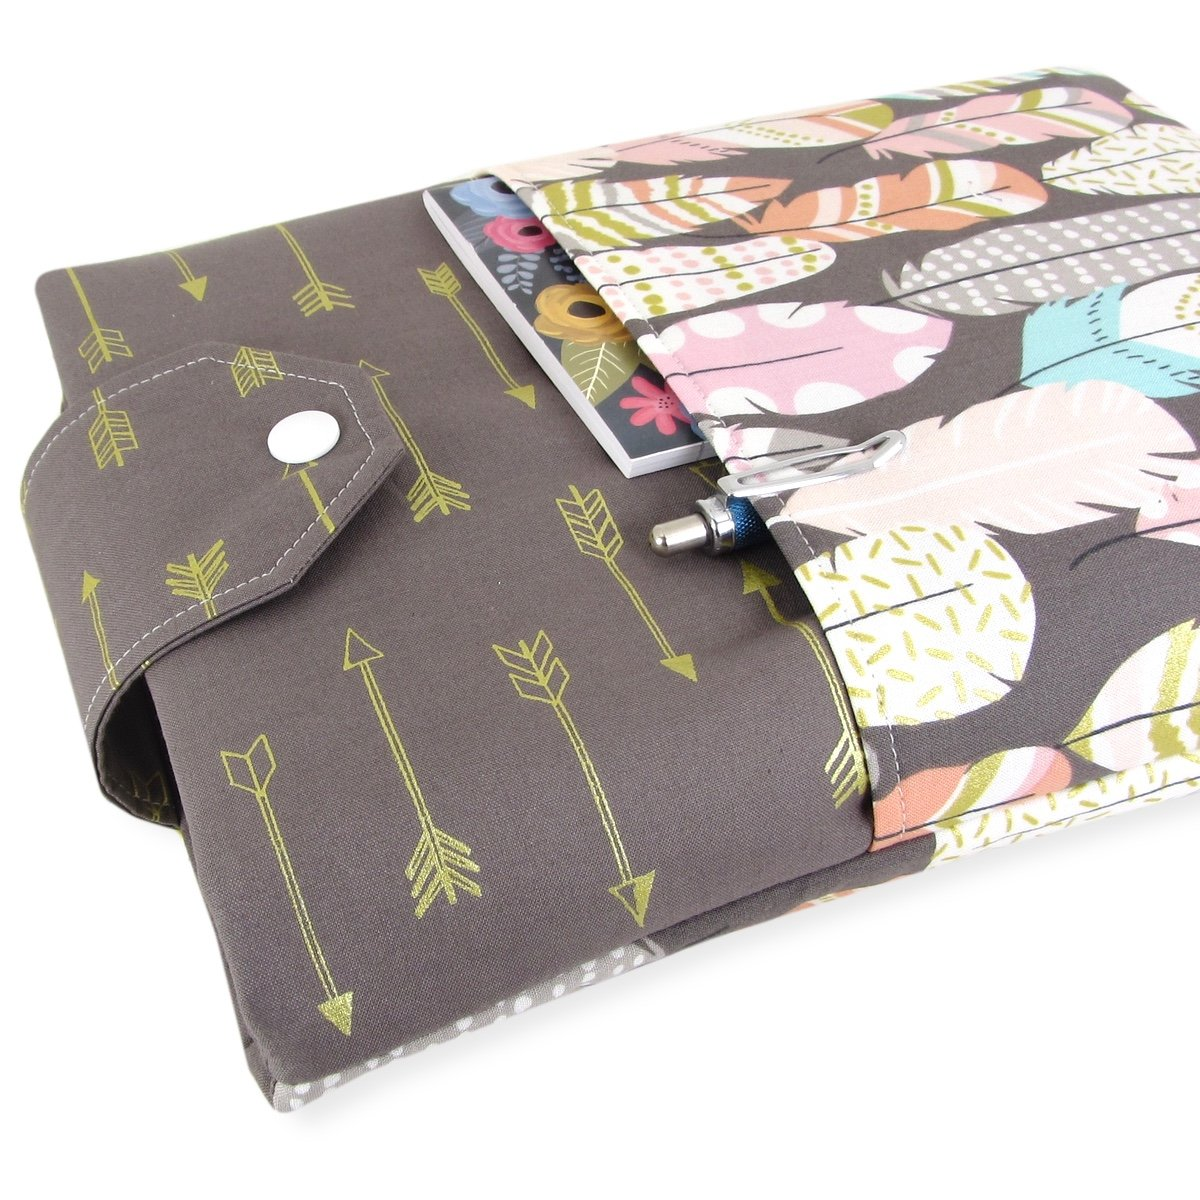 Handmade Feather Arrow Fabric Book Sleeve - Padded - Perfect For Hardbacks Or Large Paperbacks